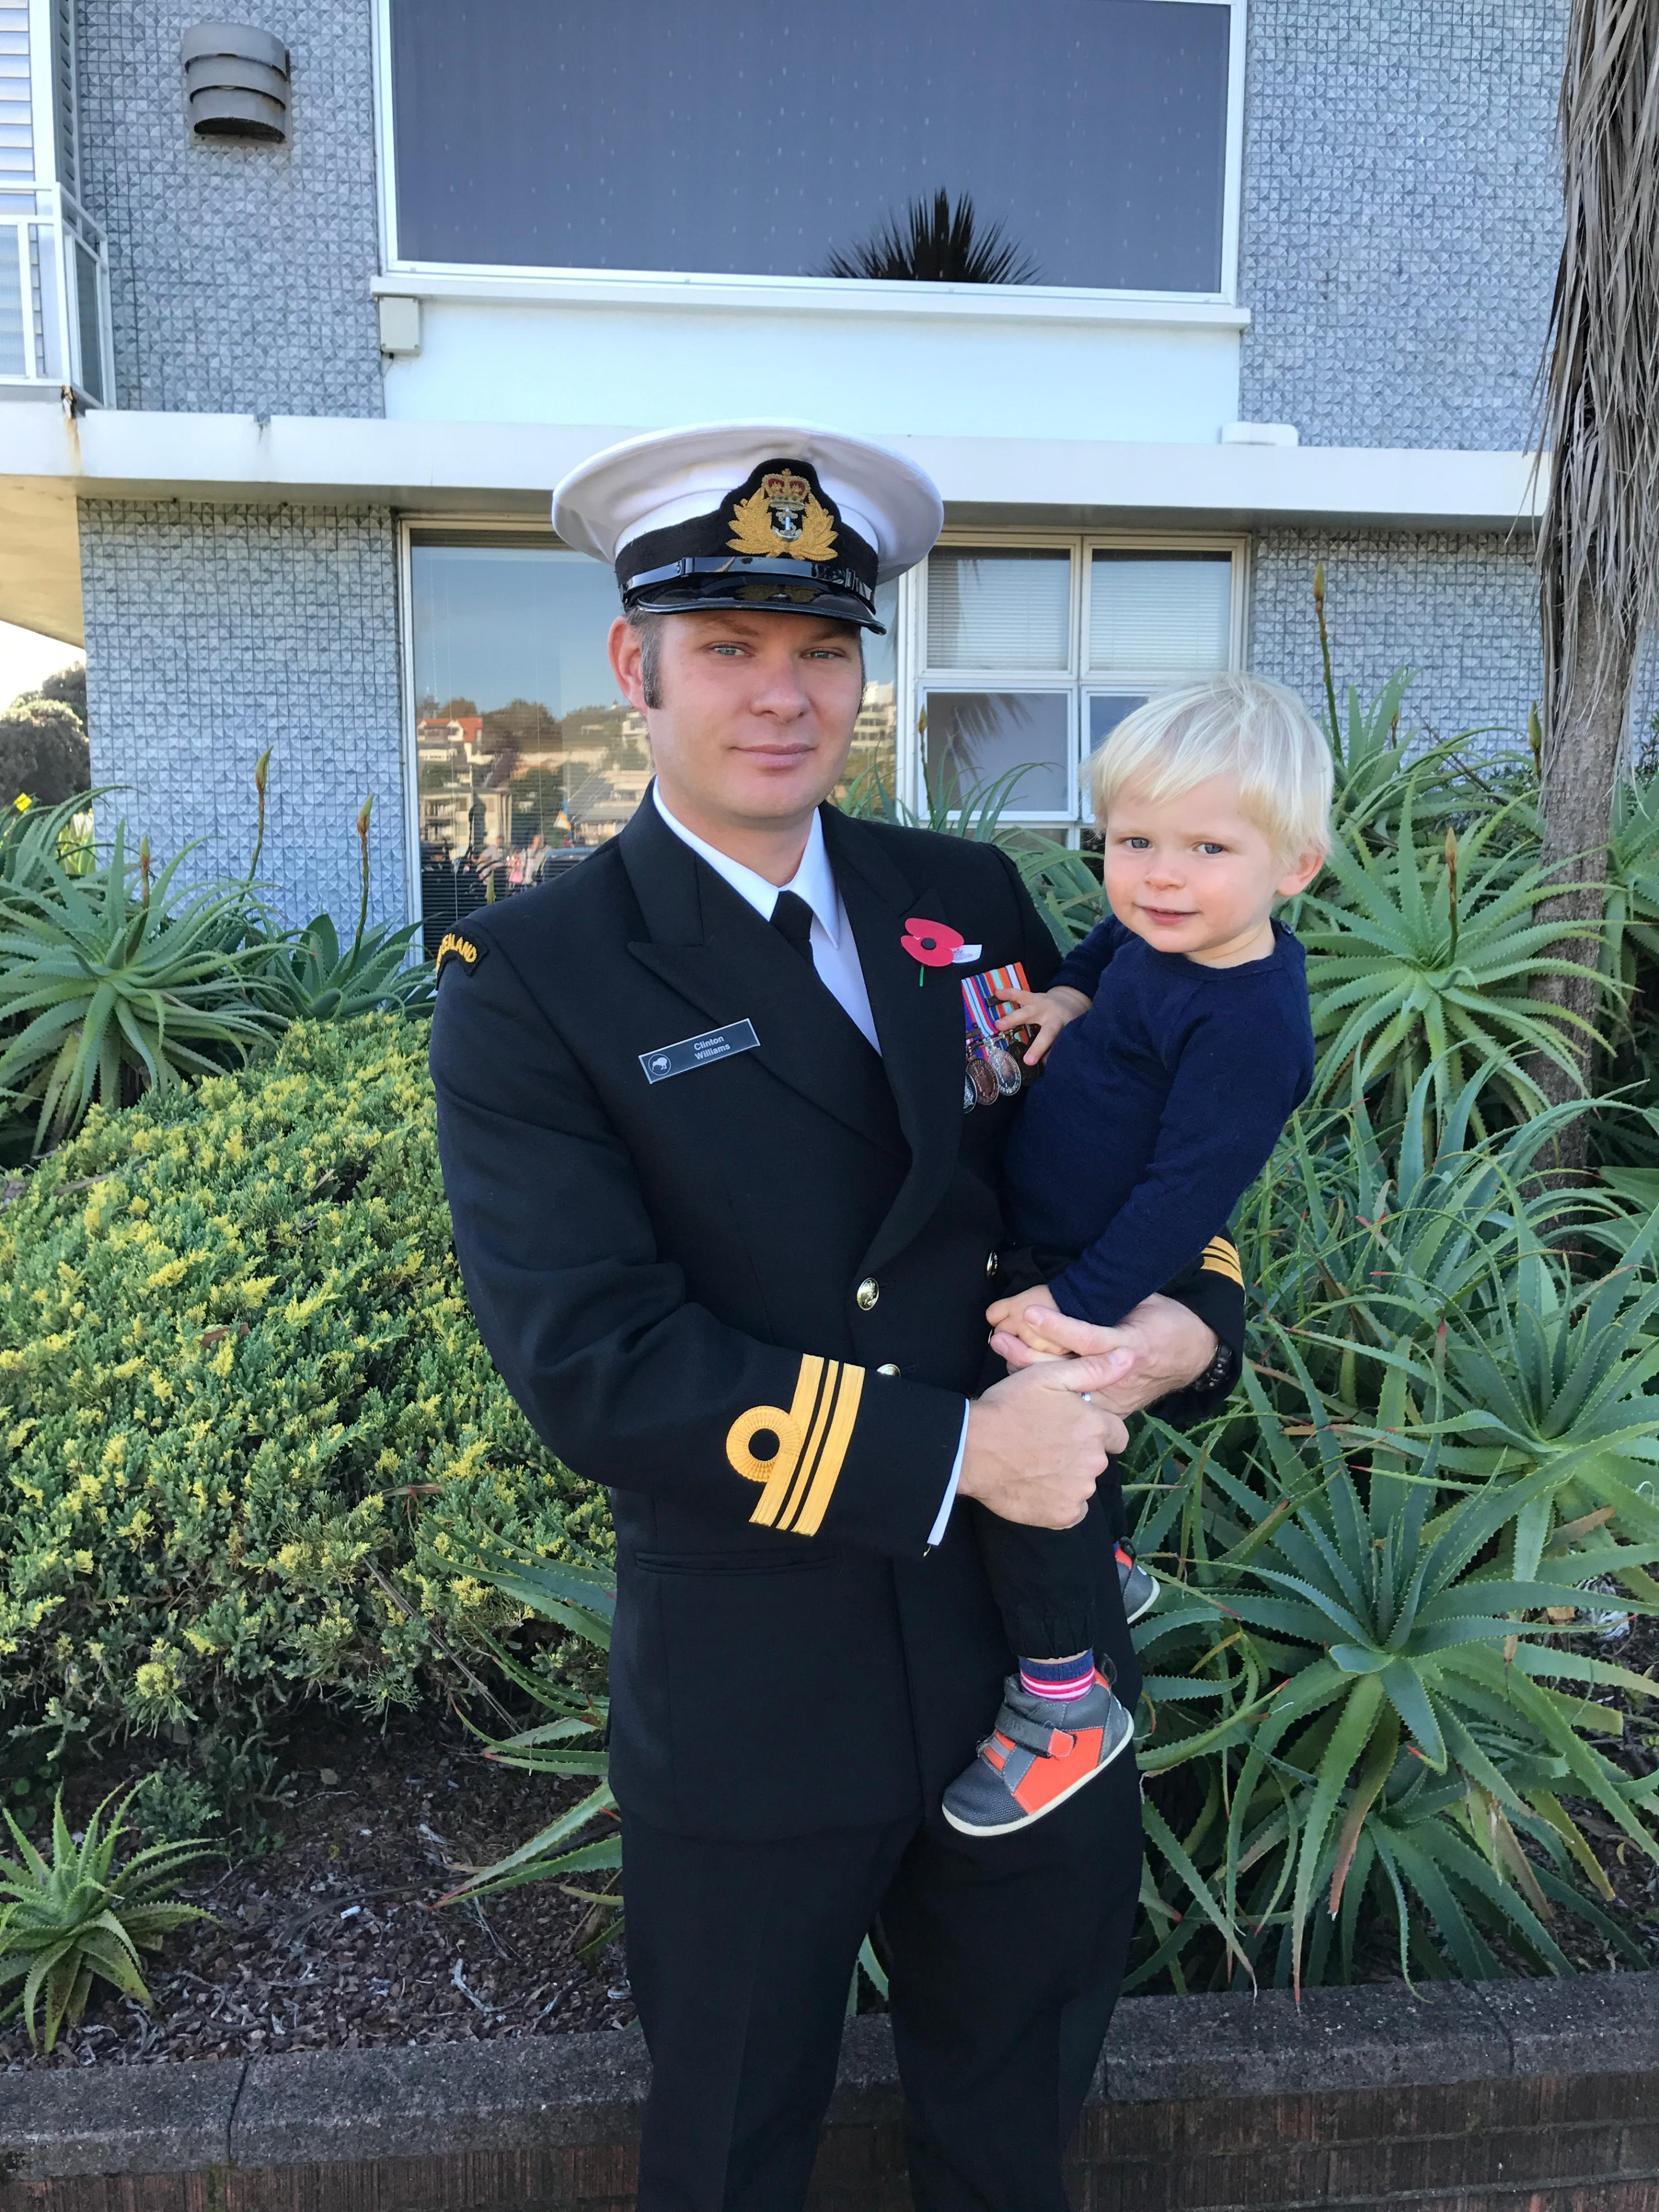 Clinton Williams in uniform on ANZAC day, carrying his child